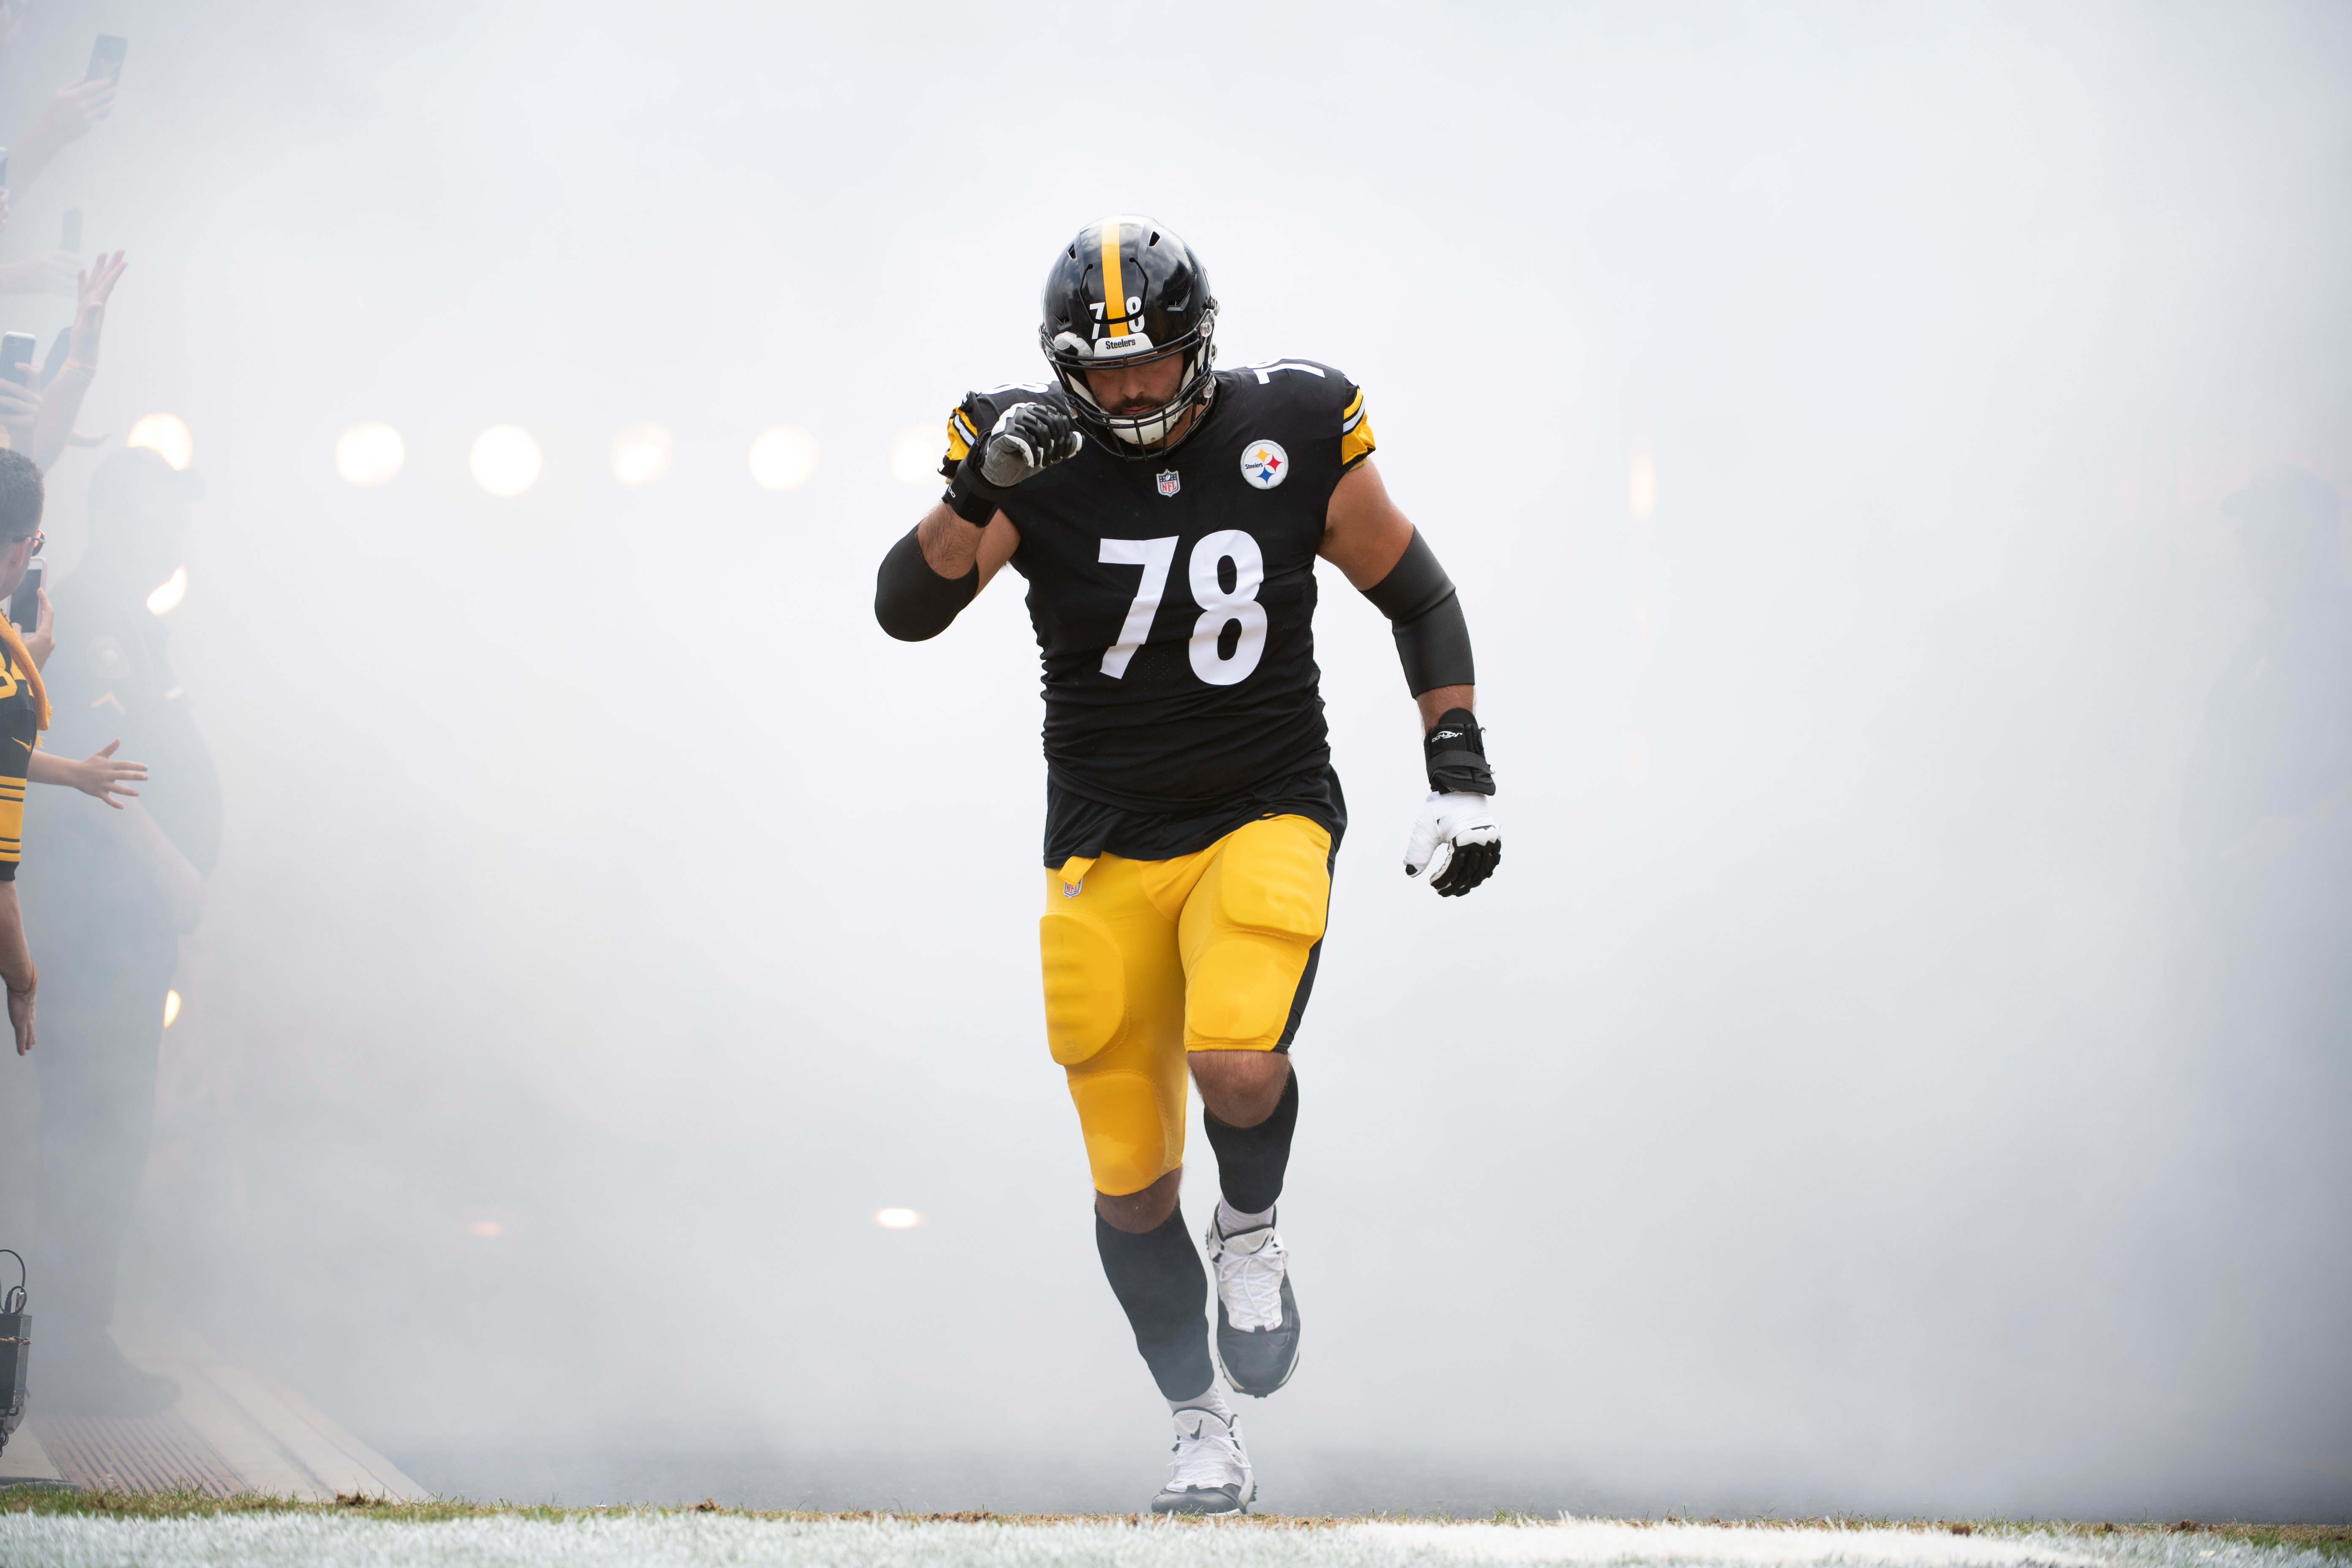 Soldier to Steeler: NFL Star Shares Insight to Military Service